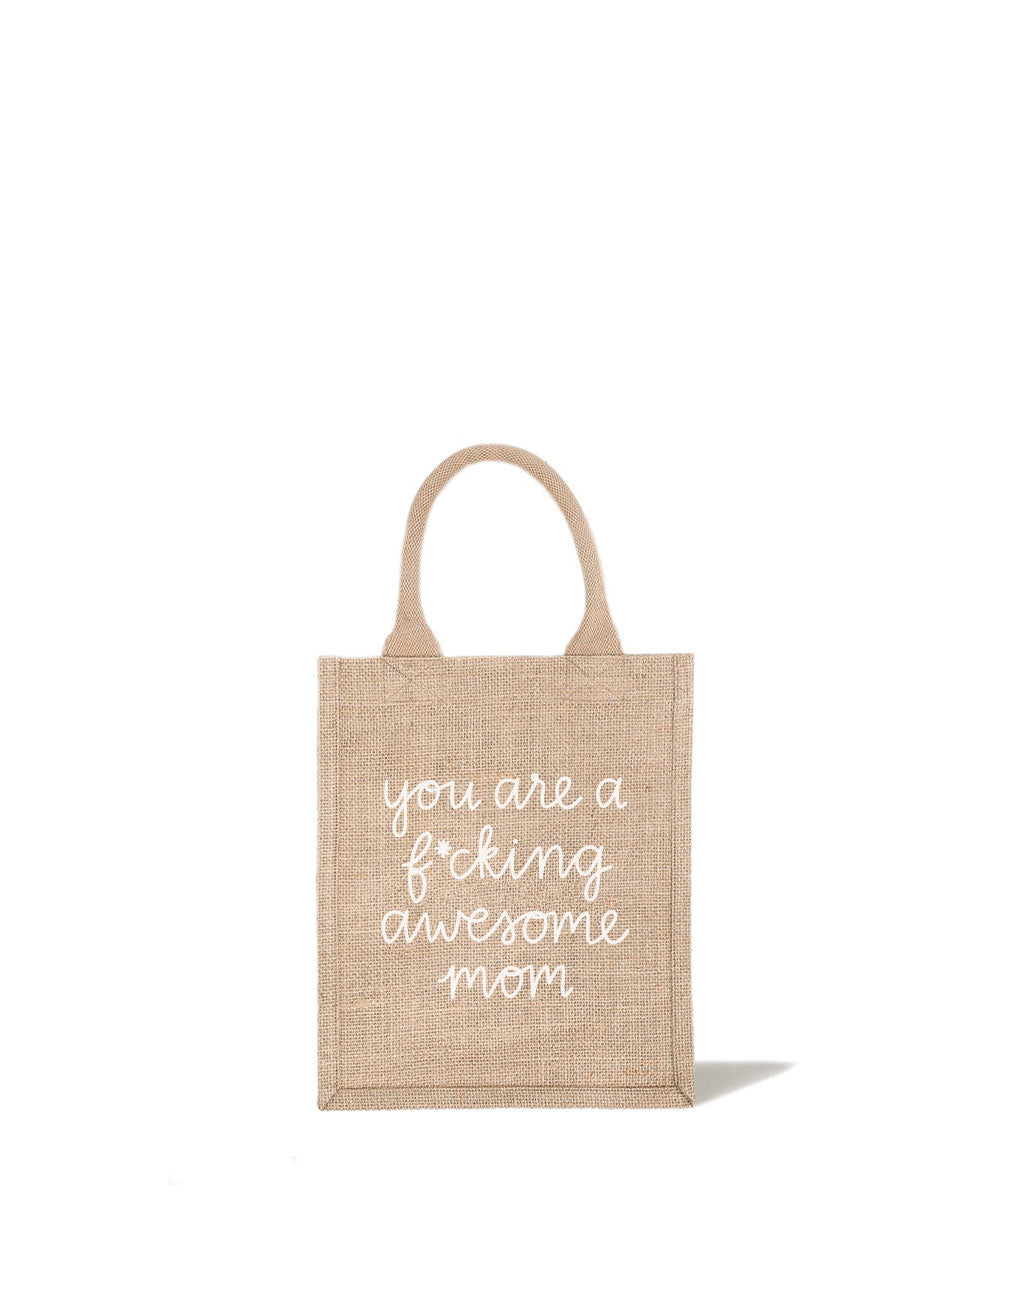 You Are a F*cking Awesome Mom Leslie Bruce Medium Gift Tote In White Font | The Little Market